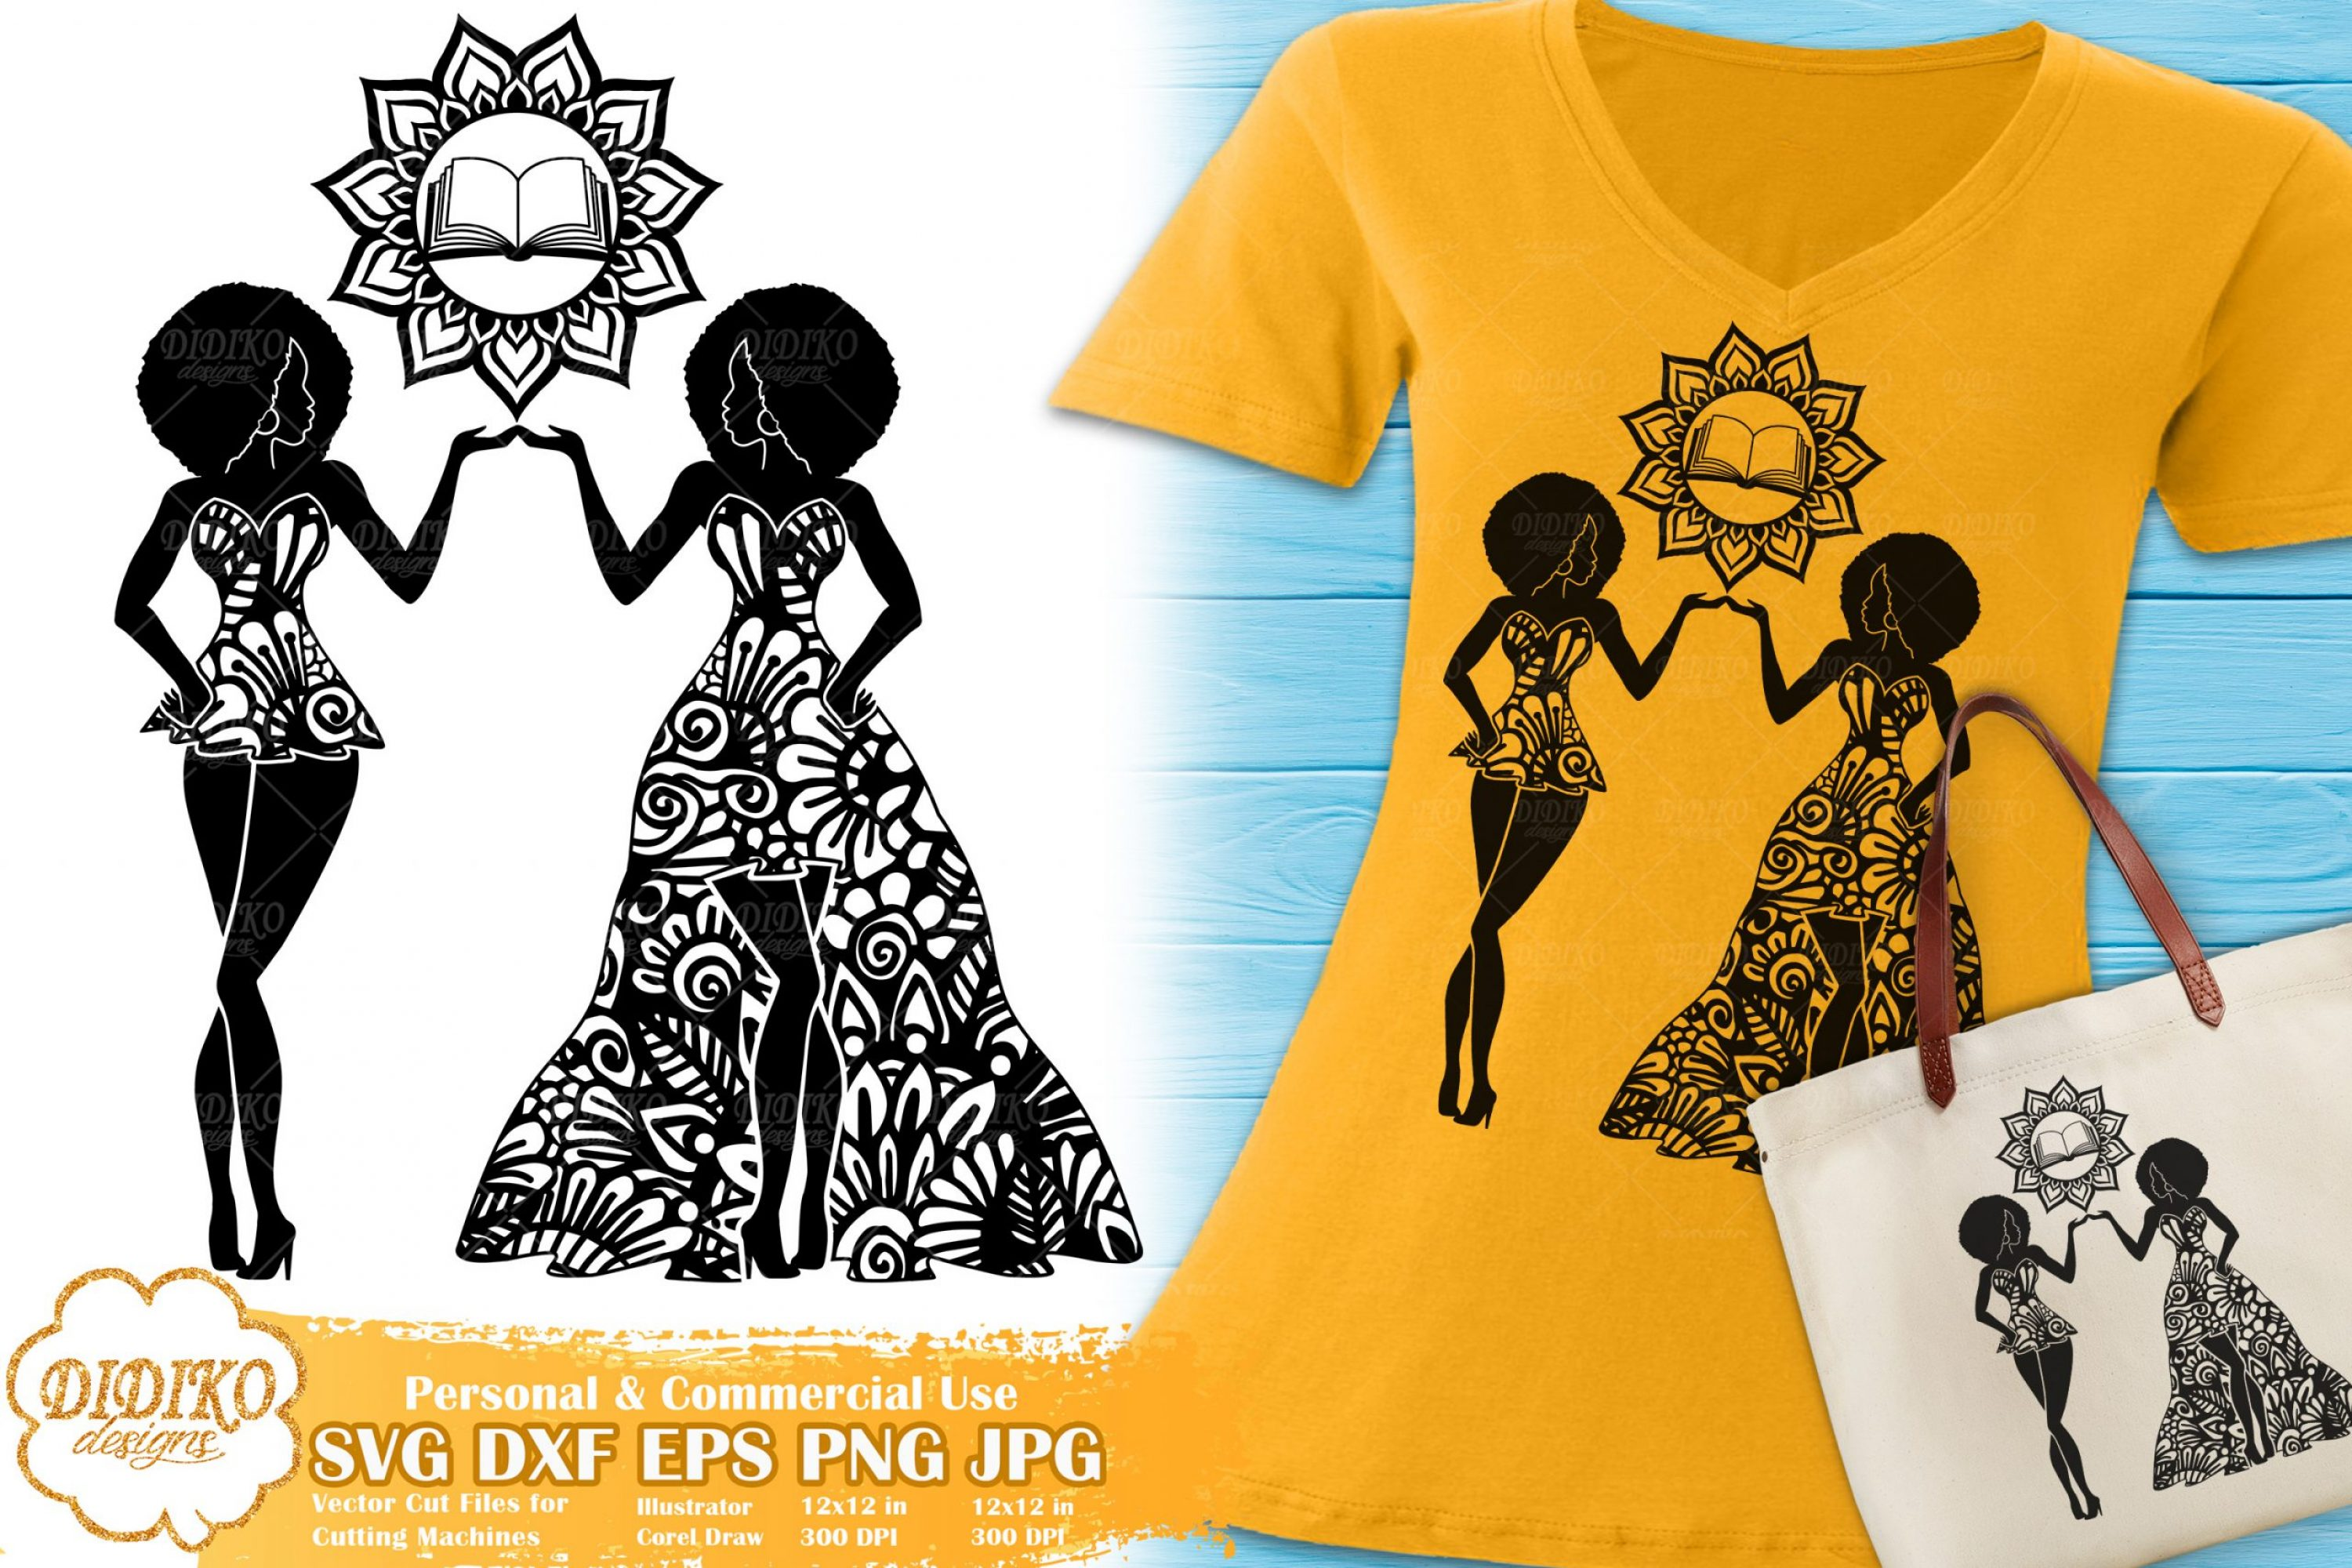 Gemini SVG | Black Woman SVG | Zentangle Cricut File